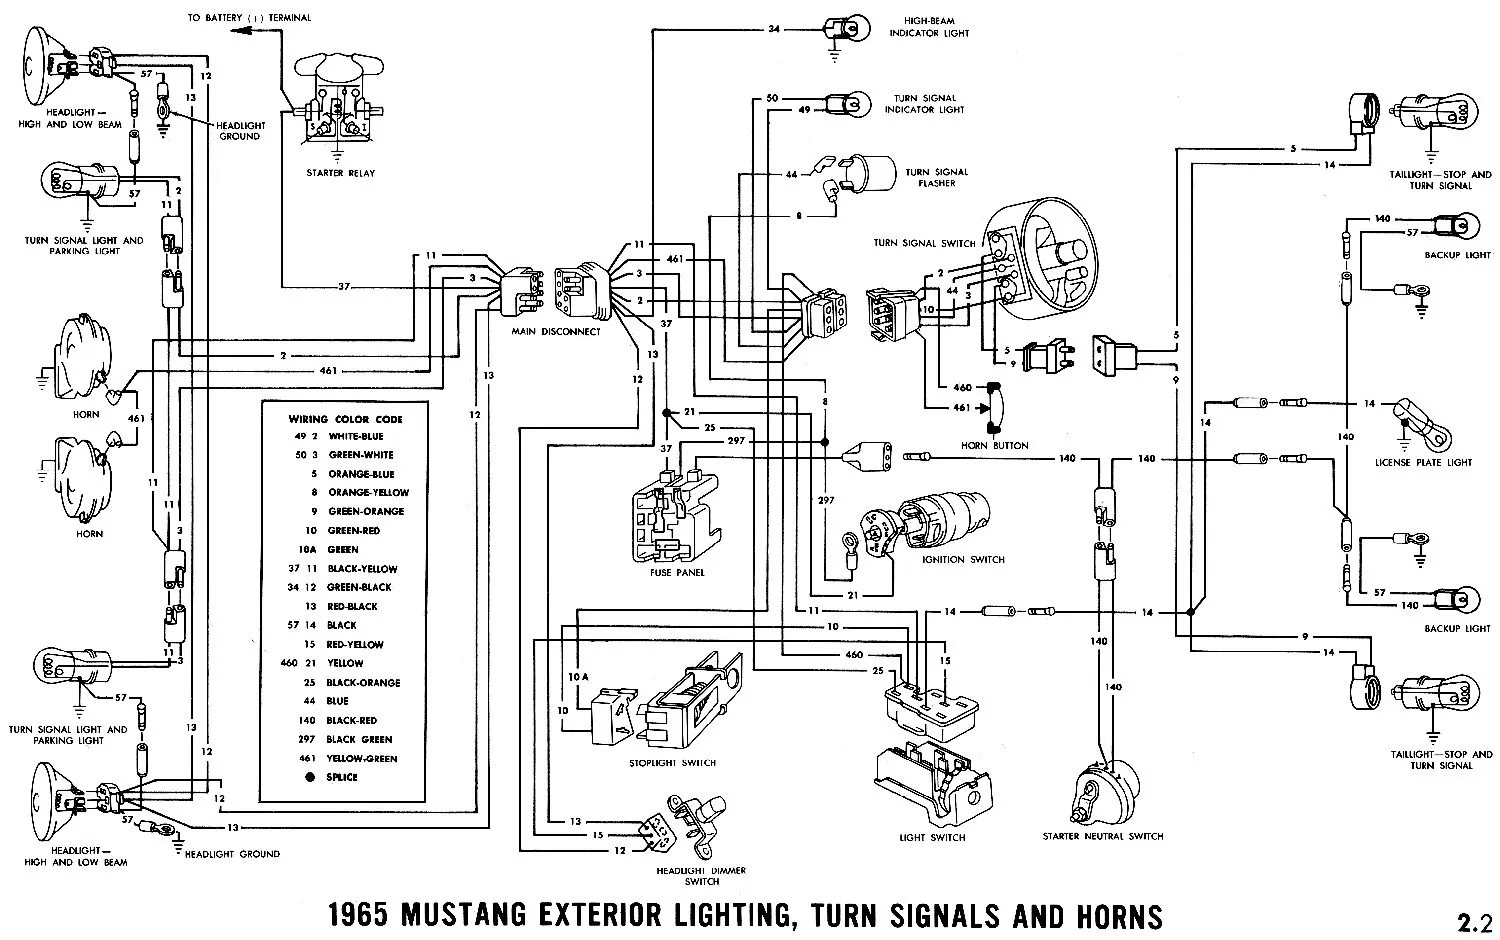 hight resolution of 65 ford mustang voltage regulator wiring diagram box wiring diagram 1965 ford mustang alternator wiring 1965 ford mustang alternator wiring